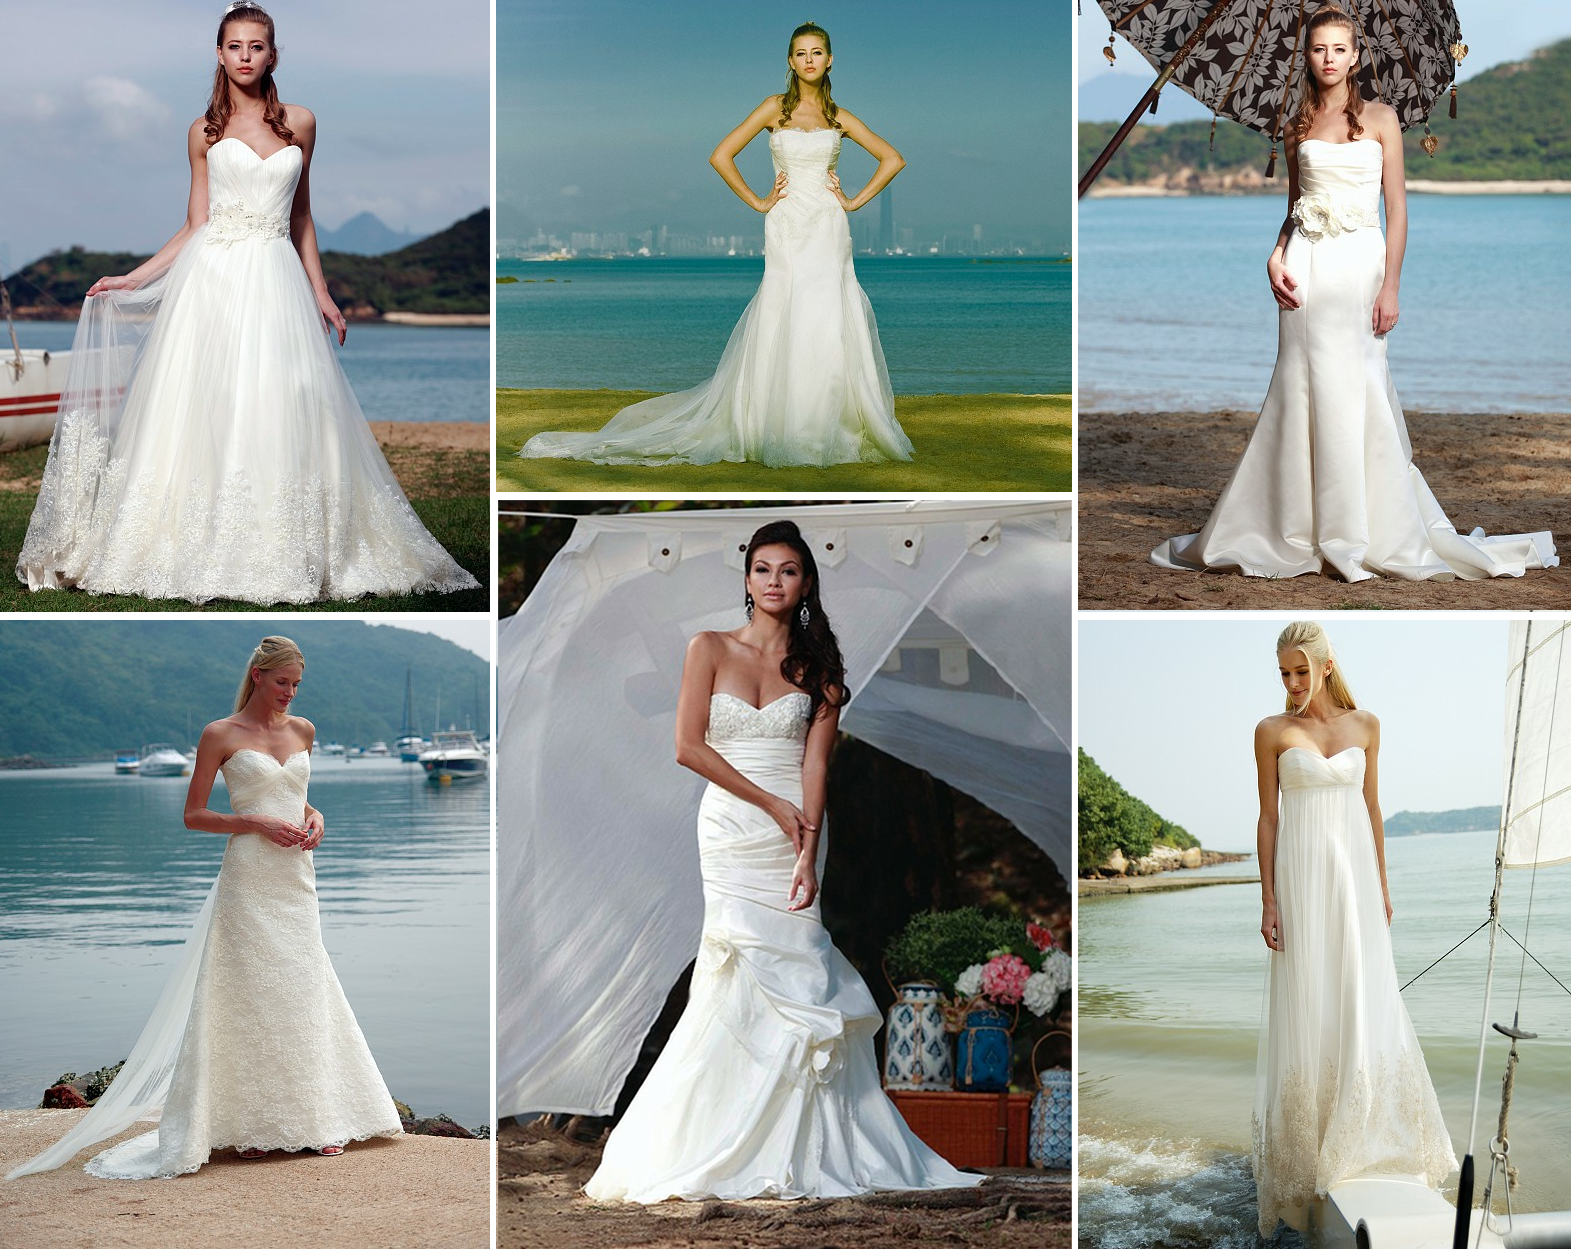 Beach-bride-wedding-dresses-from-augusta-jones-bridal-style.original